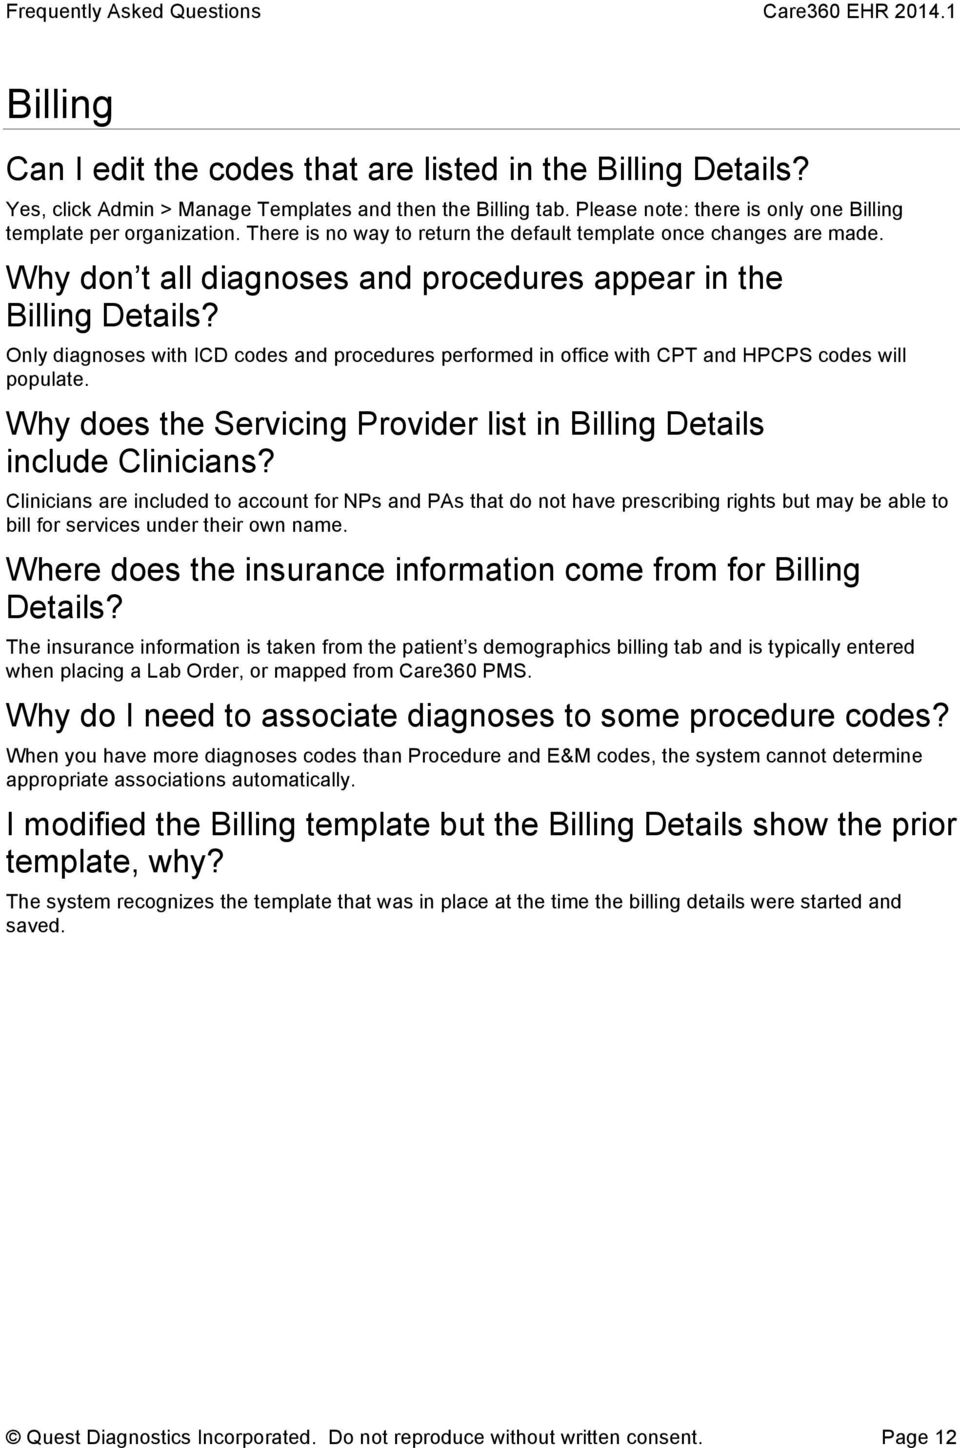 Only diagnoses with ICD codes and procedures performed in office with CPT and HPCPS codes will populate. Why does the Servicing Provider list in Billing Details include Clinicians?